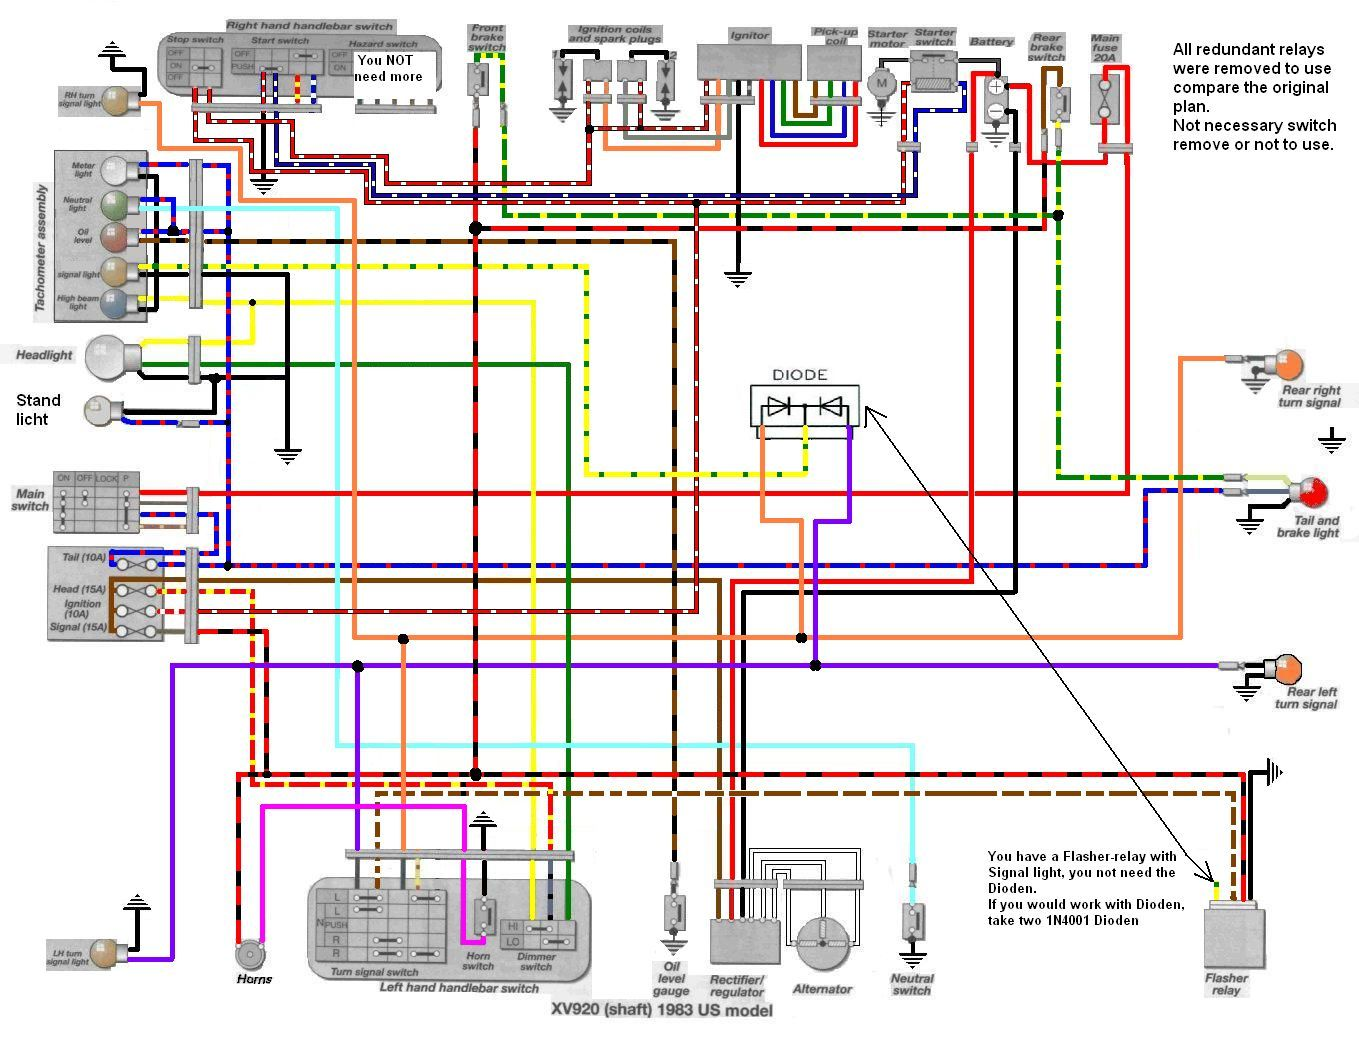 tr1 xv1000 xv920 wiring diagrams manfred s tr1 page all about yamaha tr1 xv1000 xv920 [ 1359 x 1047 Pixel ]